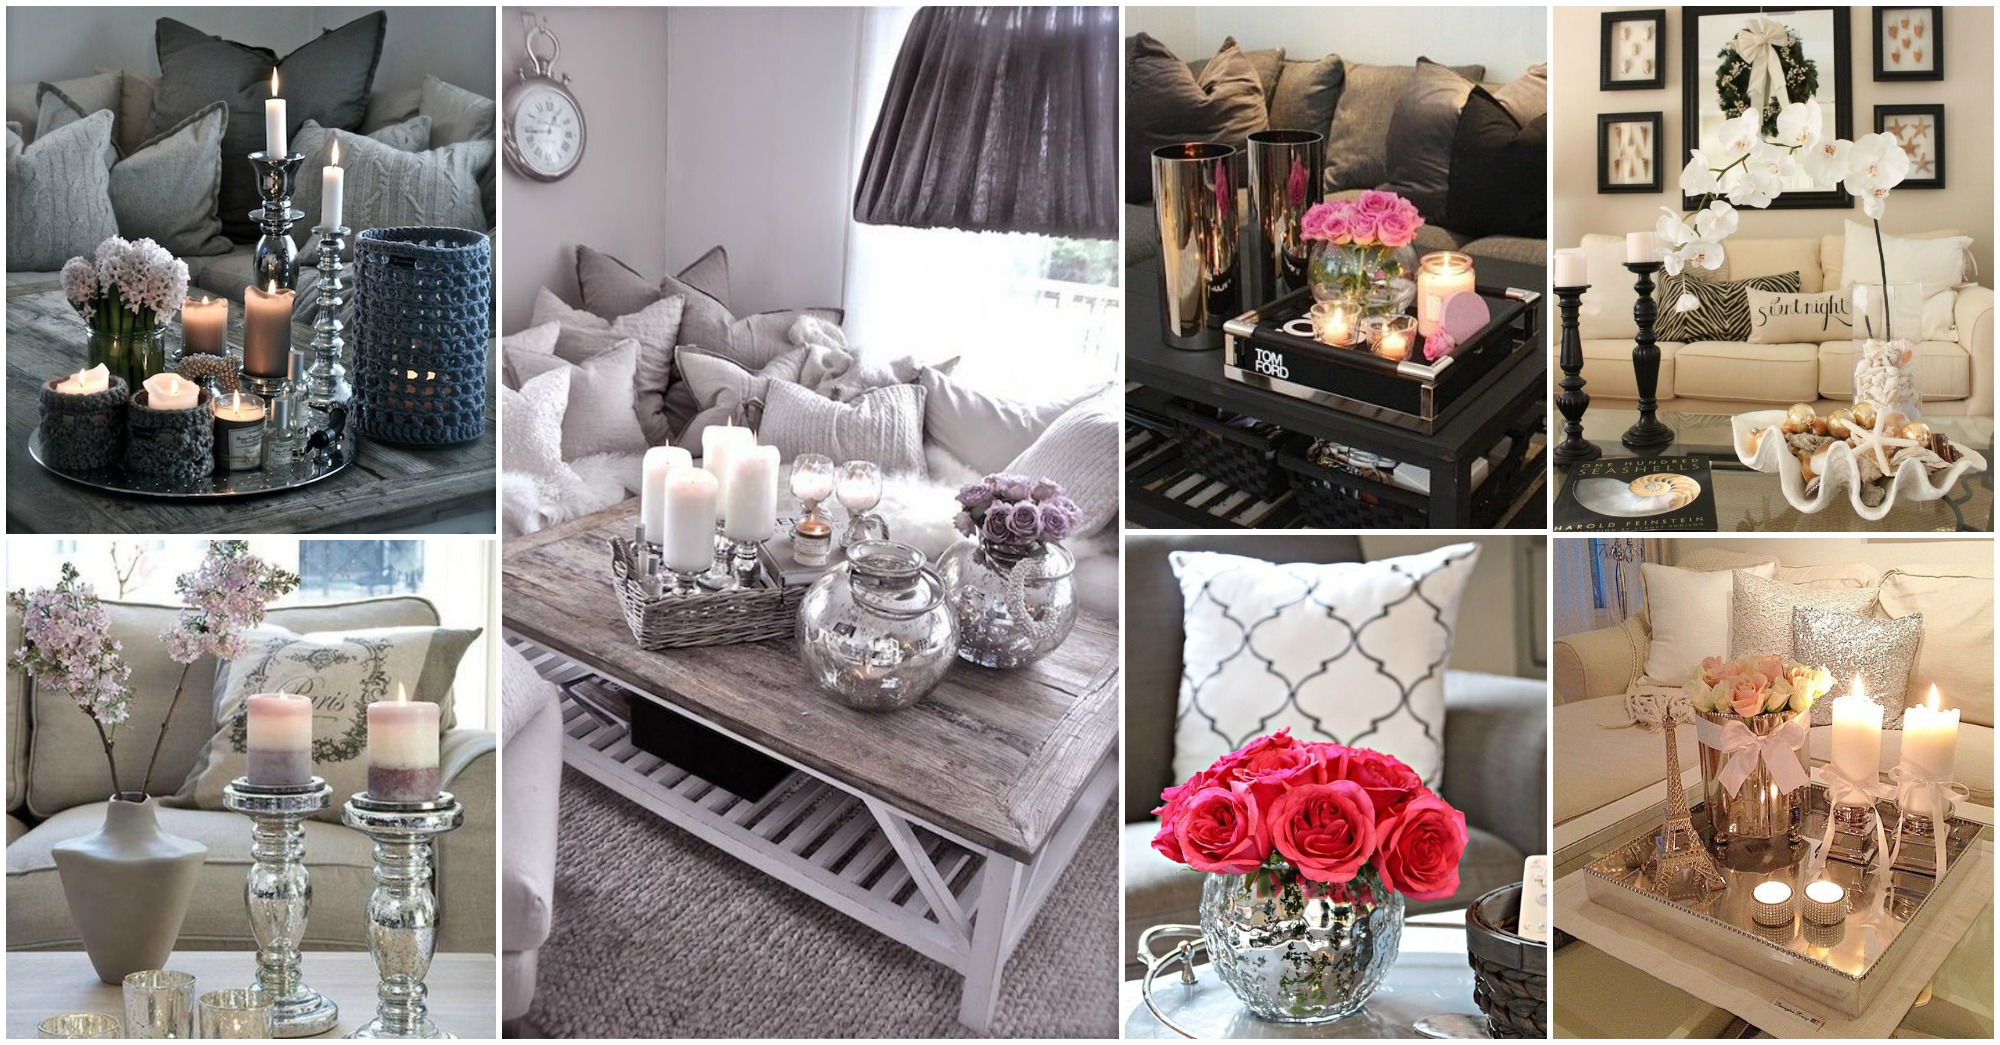 Showy Super Living Room Coffee Table Decor Ideas That Will Amaze You Super Living Room Coffee Table Decor Ideas That Will Coffee Table Decor Ideas Diy Coffee Table Decor G houzz-03 Coffee Table Decor